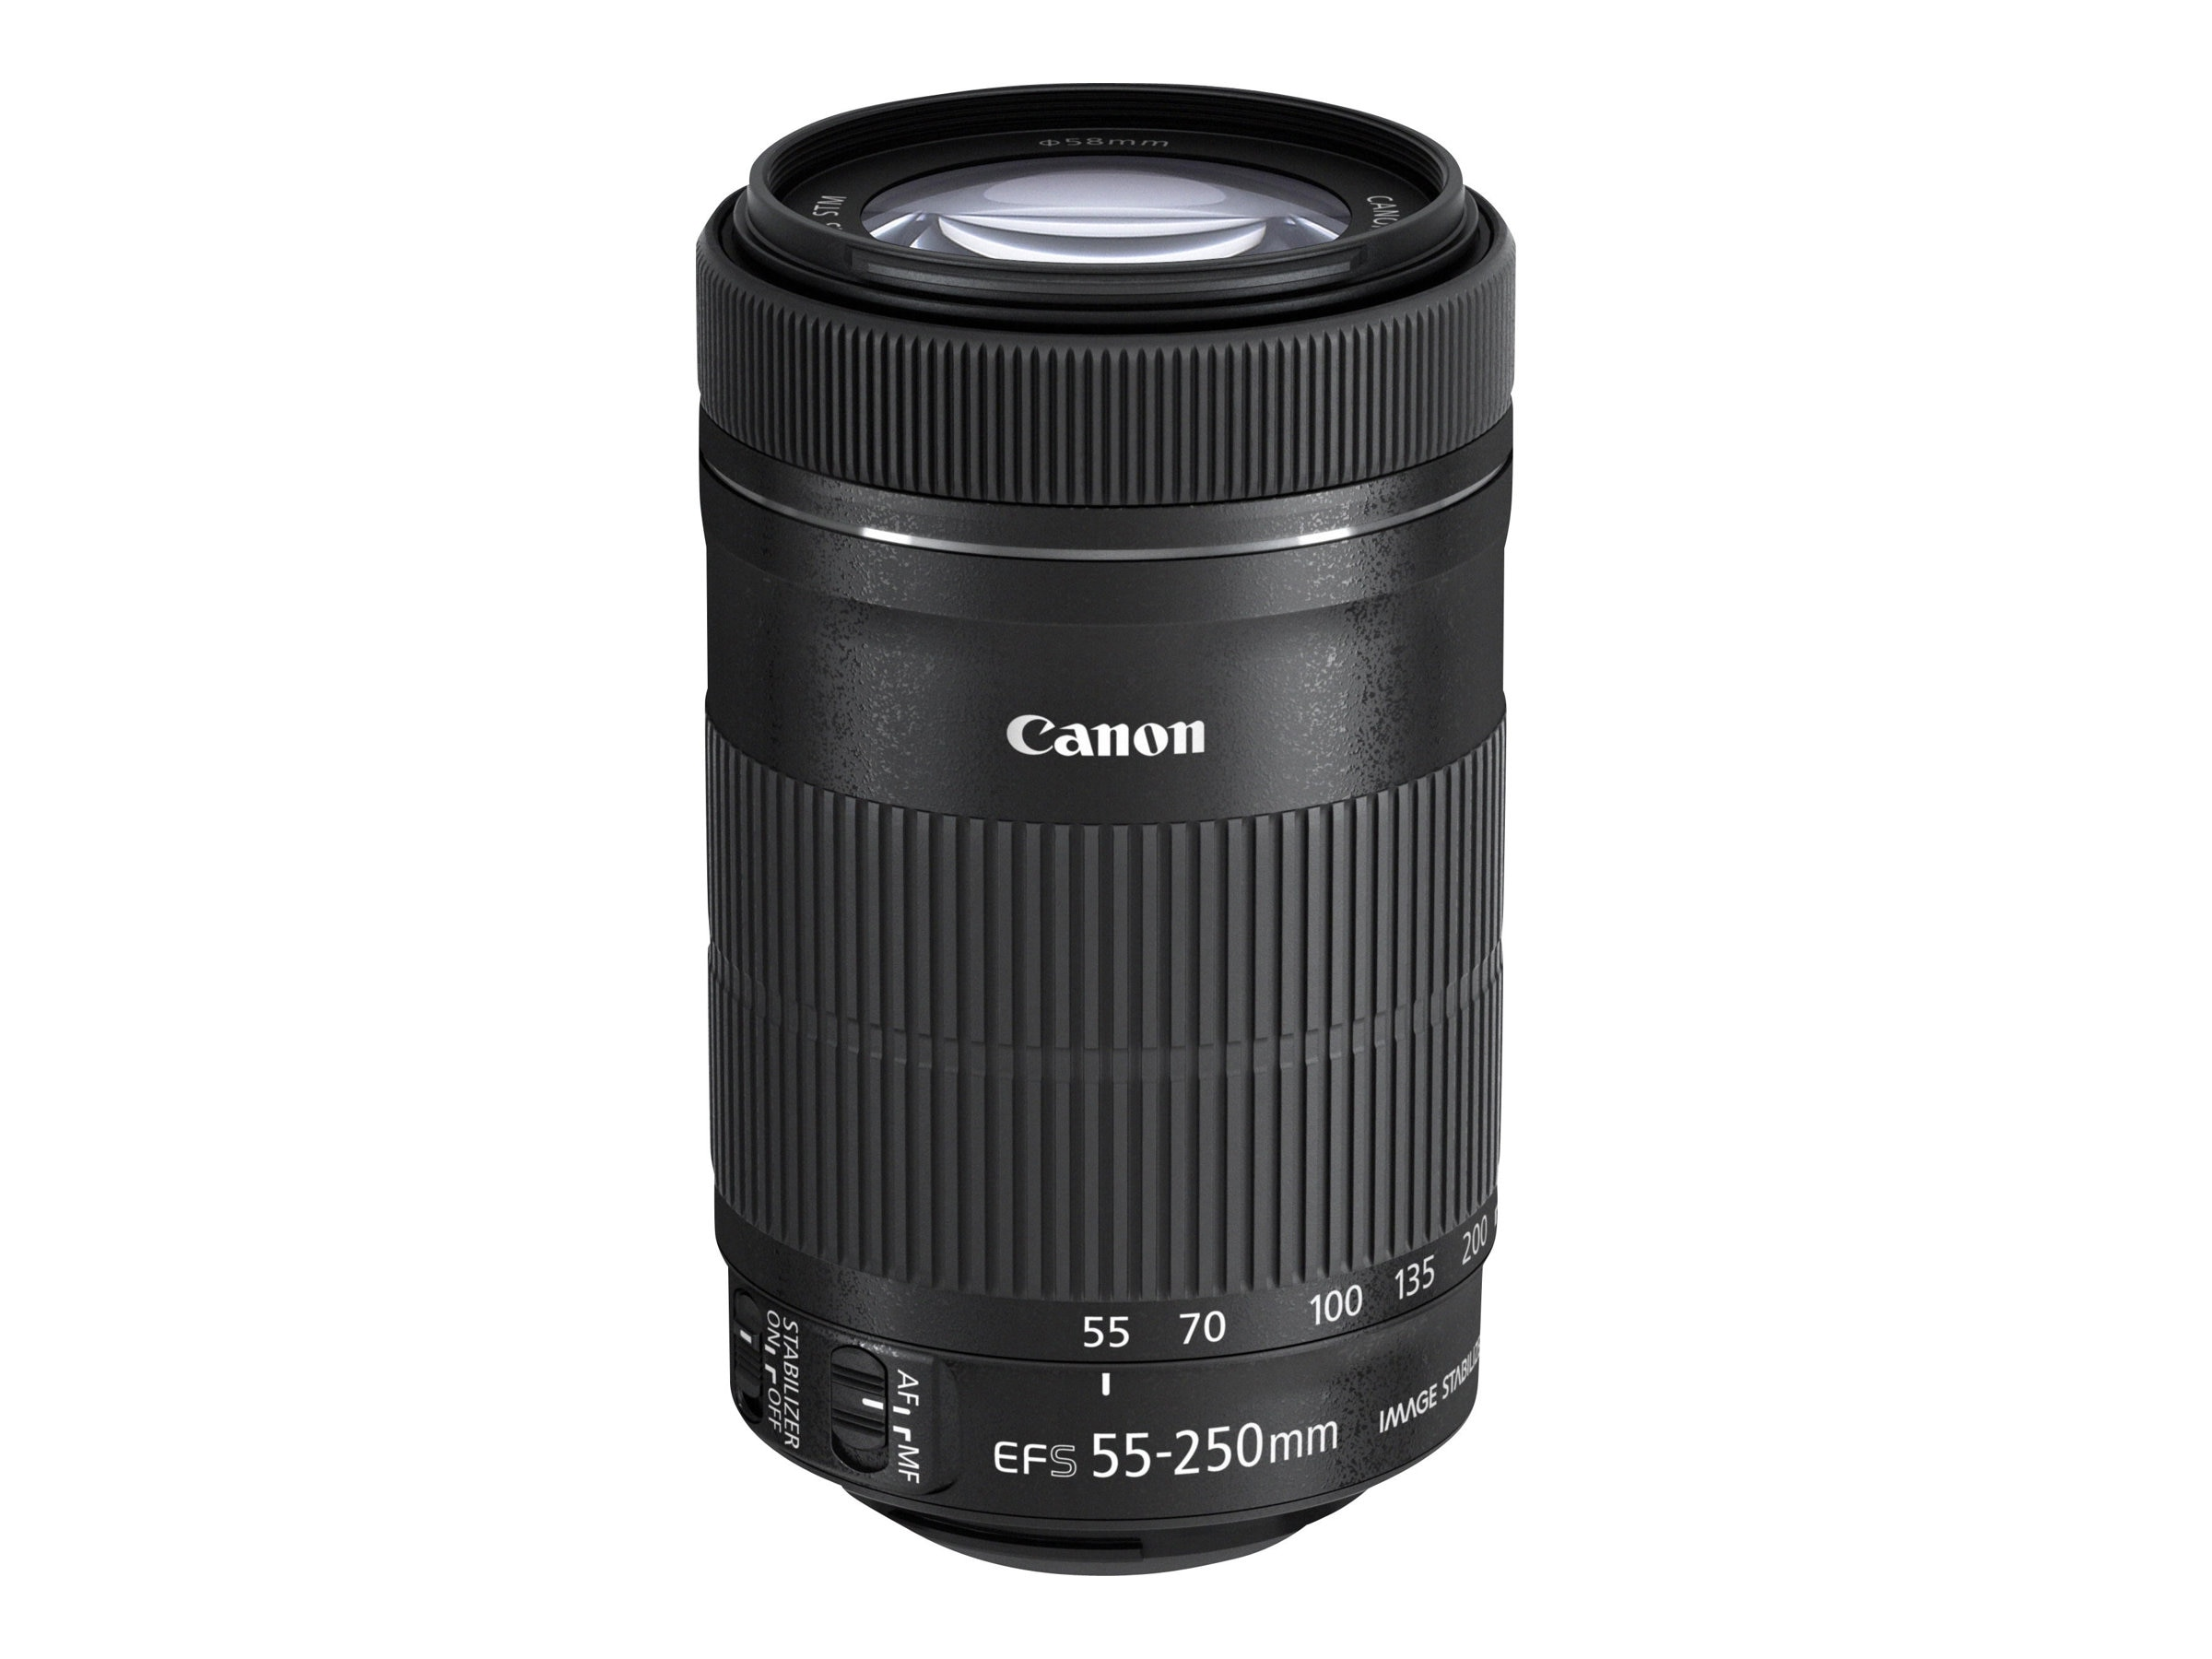 Canon EF-S 55-250mm f 4-5.6 IS STM Telephoto Zoom Lens, 8546B002, 16241554, Camera & Camcorder Lenses & Filters